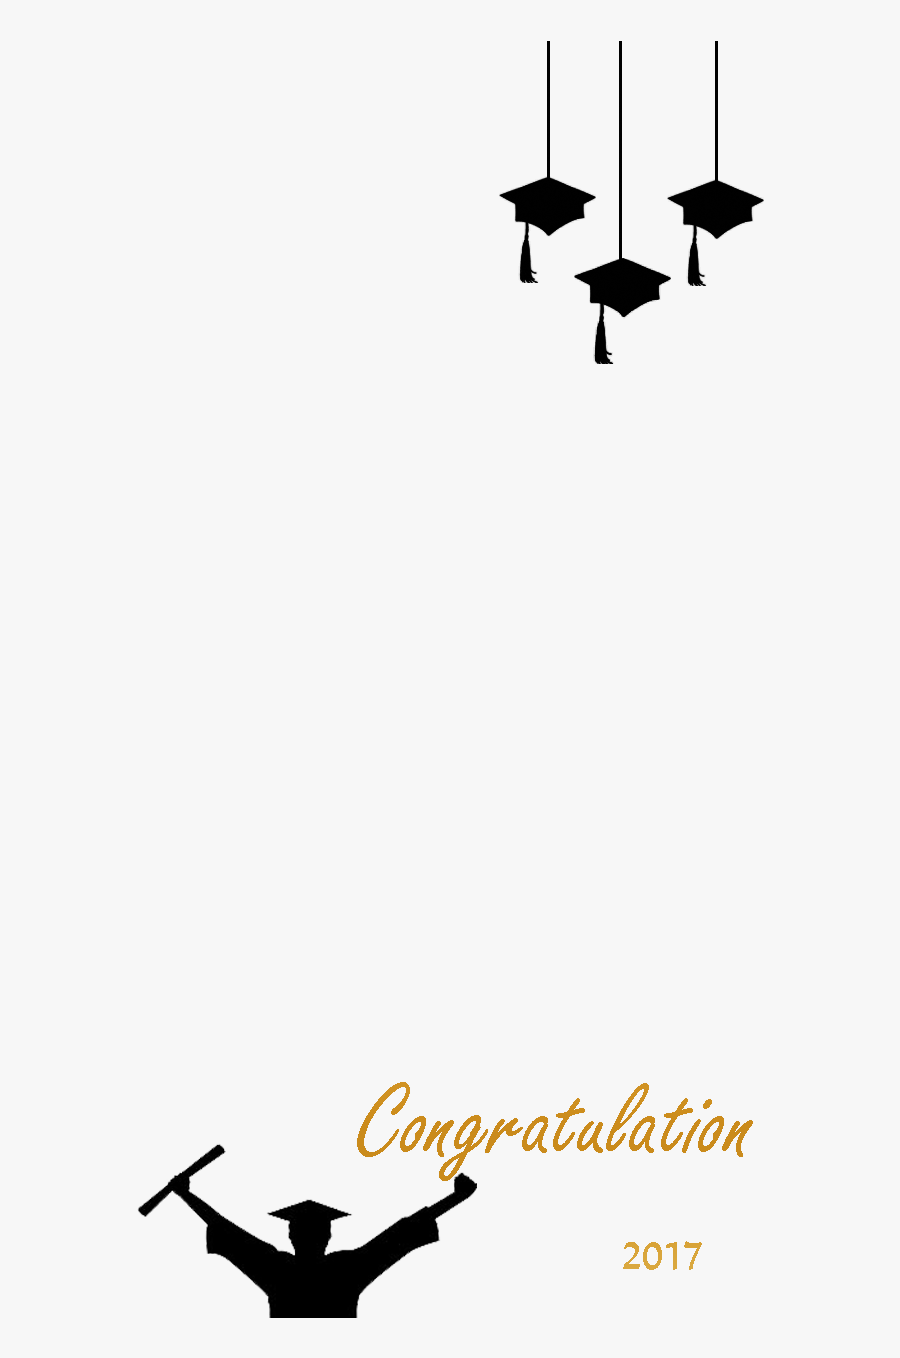 Graduation Snapchat Filter Png Free Transparent Clipart Clipartkey